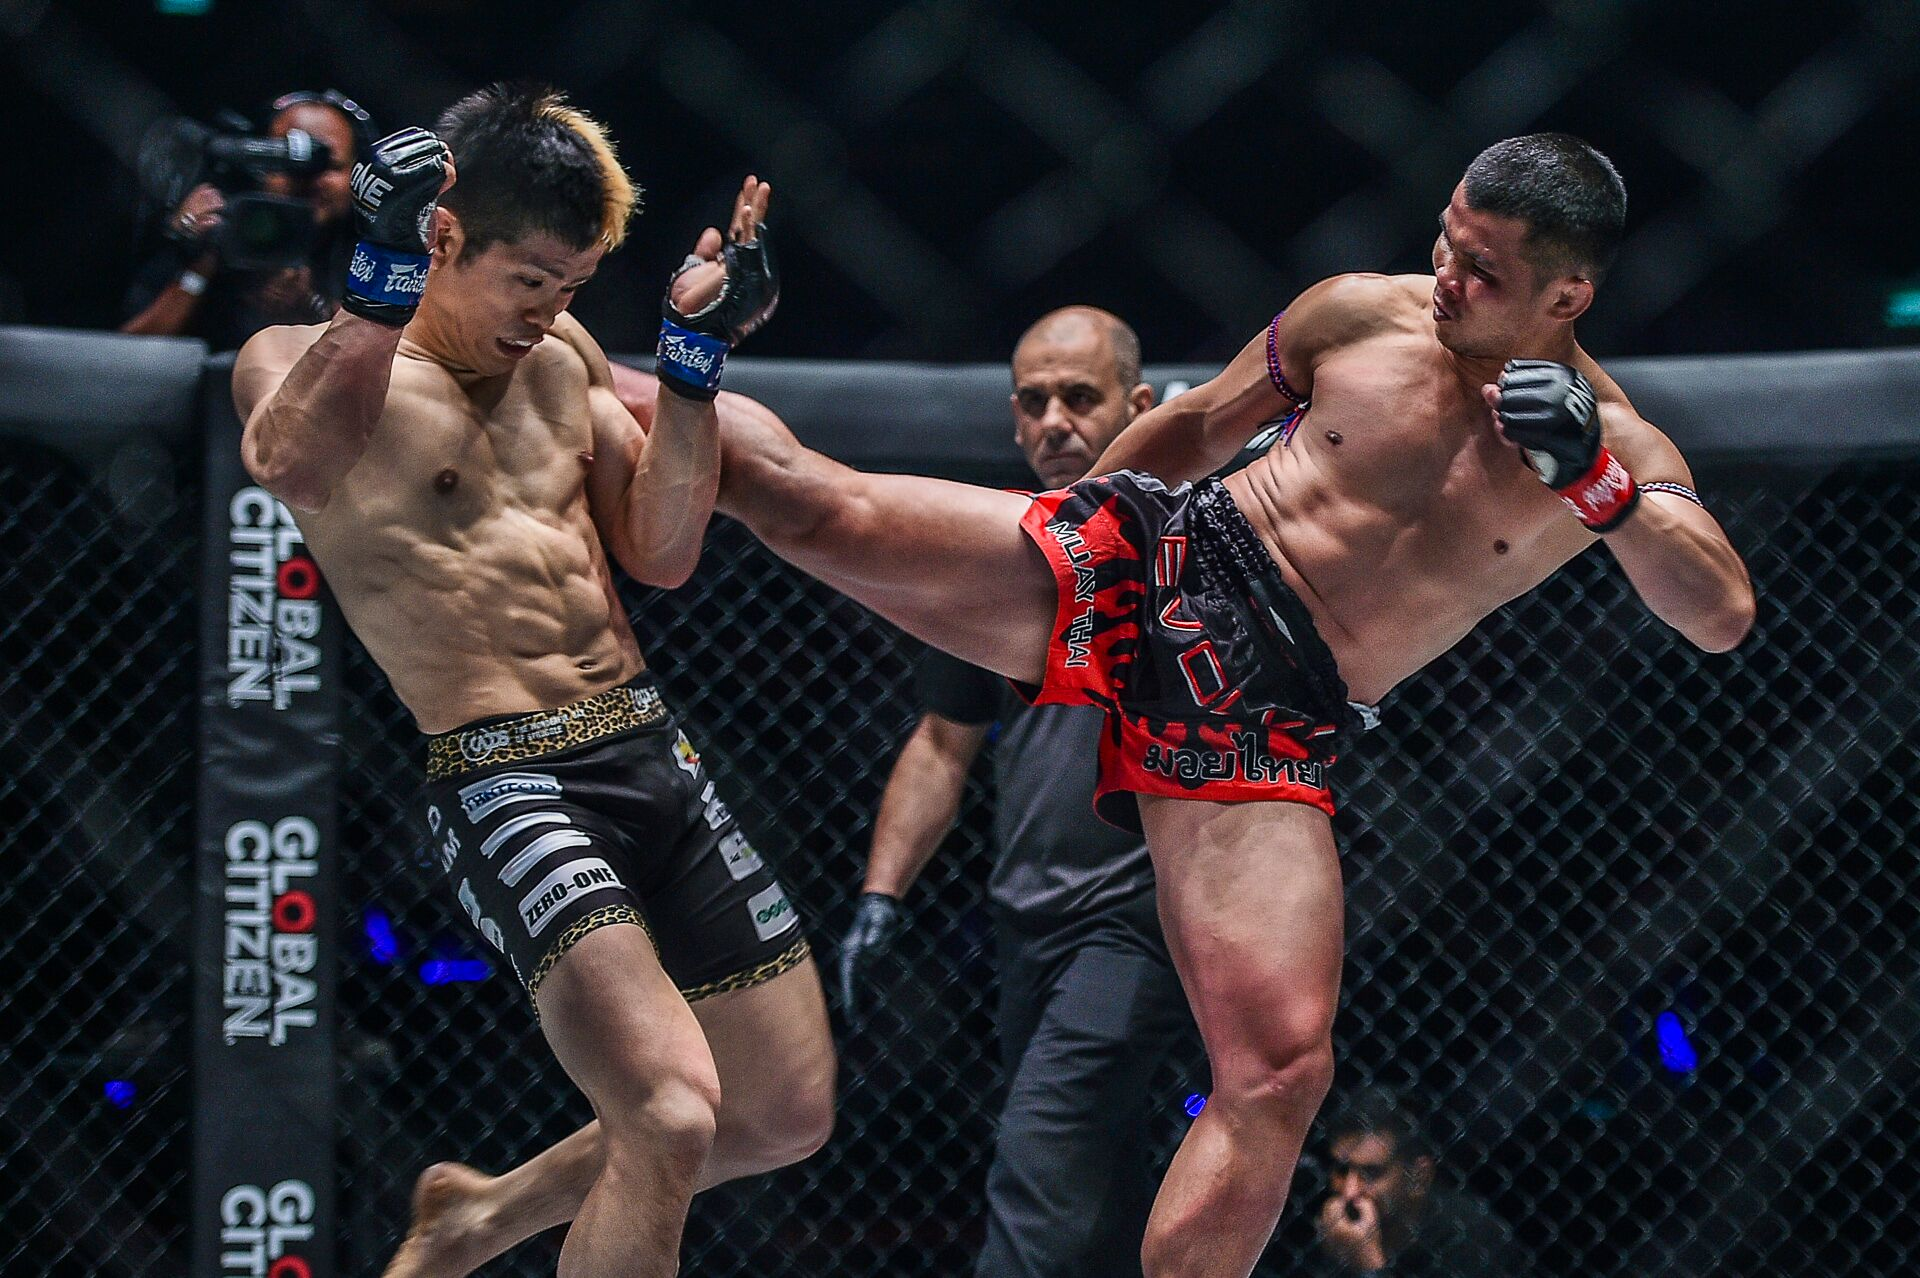 Global Asia News							[PHOTOS] Thailand vs Japan: Nong-o Gaiyanghadao, Hiroaki Suzuki fight at 'ONE: Warriors of Light' in ThailandPost navigation